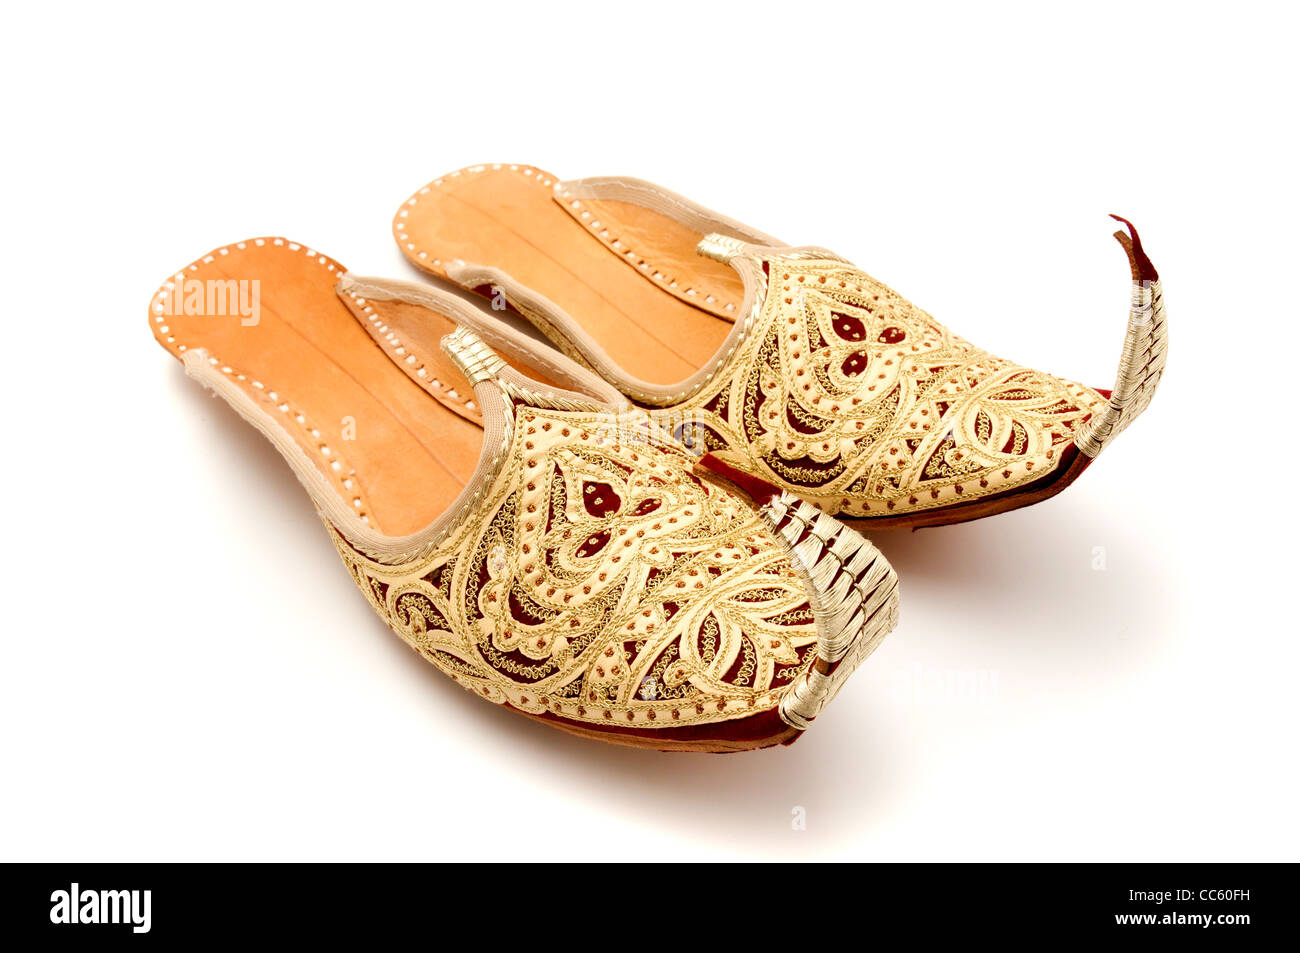 dcd899ccaf0 Arabic Slippers Stock Photos   Arabic Slippers Stock Images - Alamy